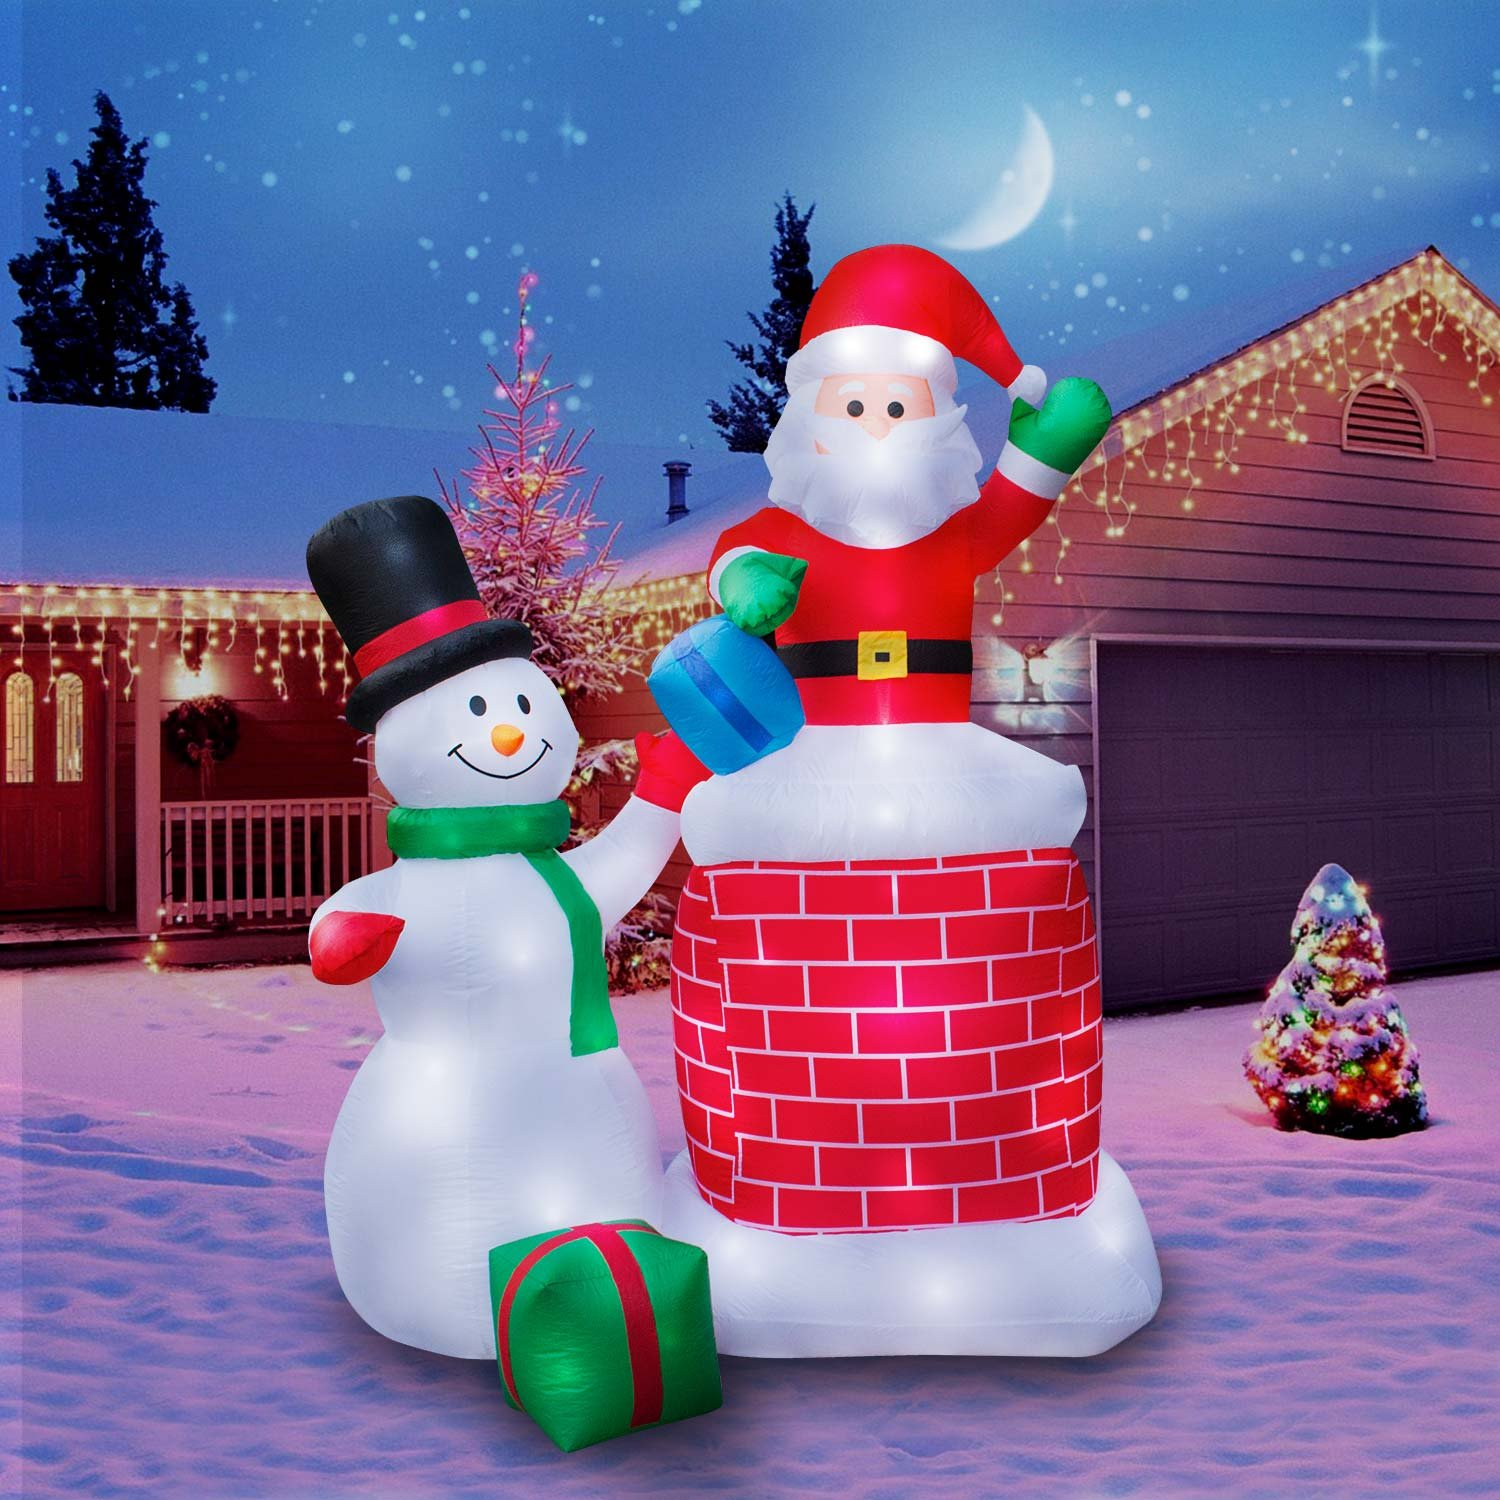 Holidayana Christmas Inflatable Giant 10 Ft. Santa Claus & Snowman Duo Christmas Inflatable Featuring Lighted Interior/Airblown Inflatable Christmas Decoration With Built In Fan And Anchor Ropes by Holidayana